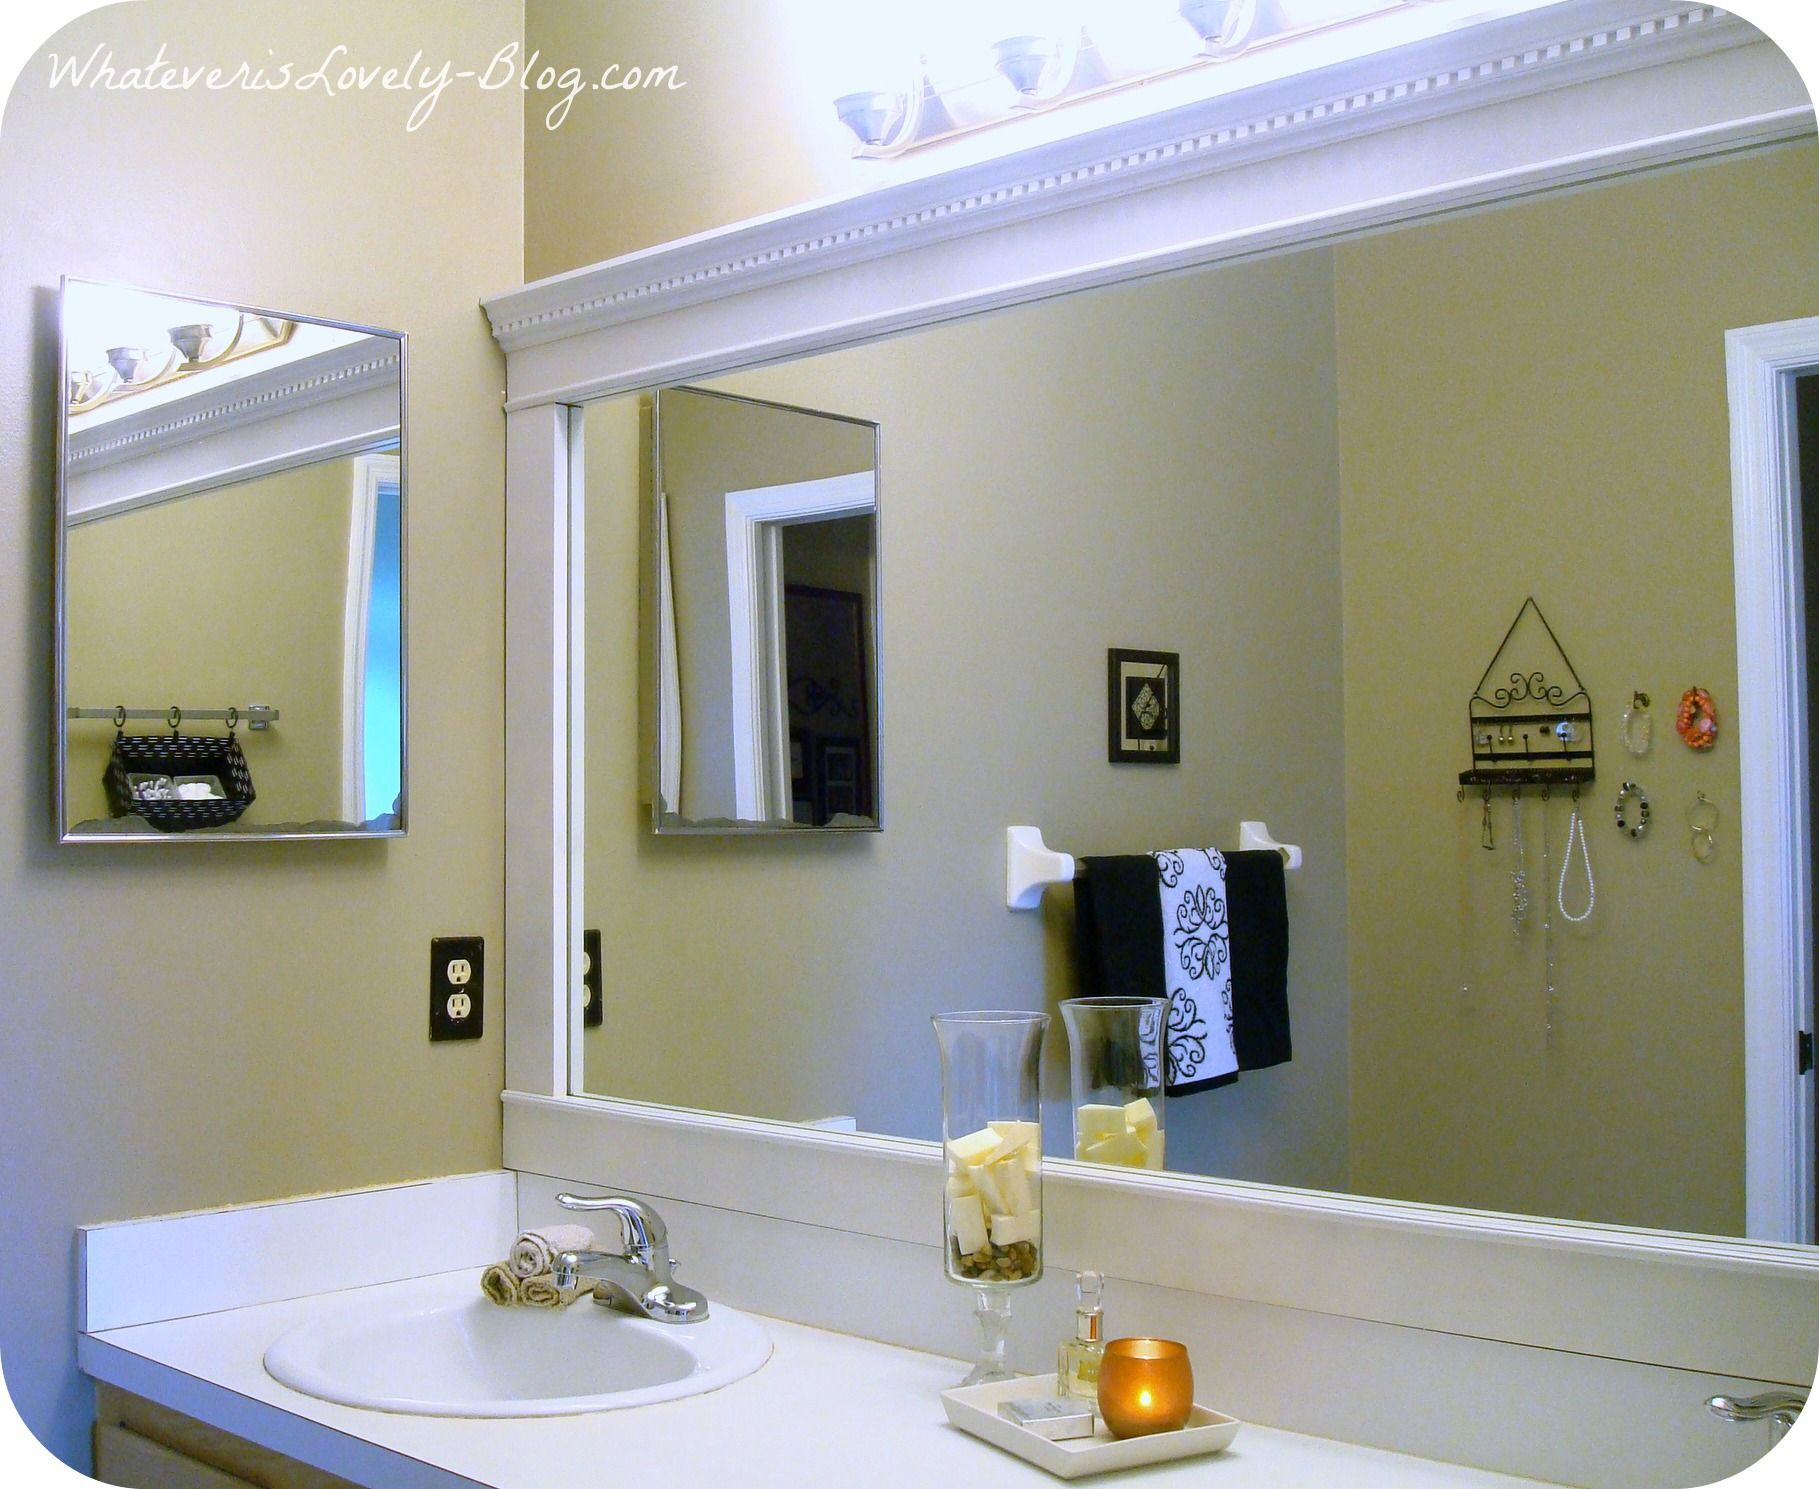 mirror how to frame bathroom mirror mirror bathroom framed mirror